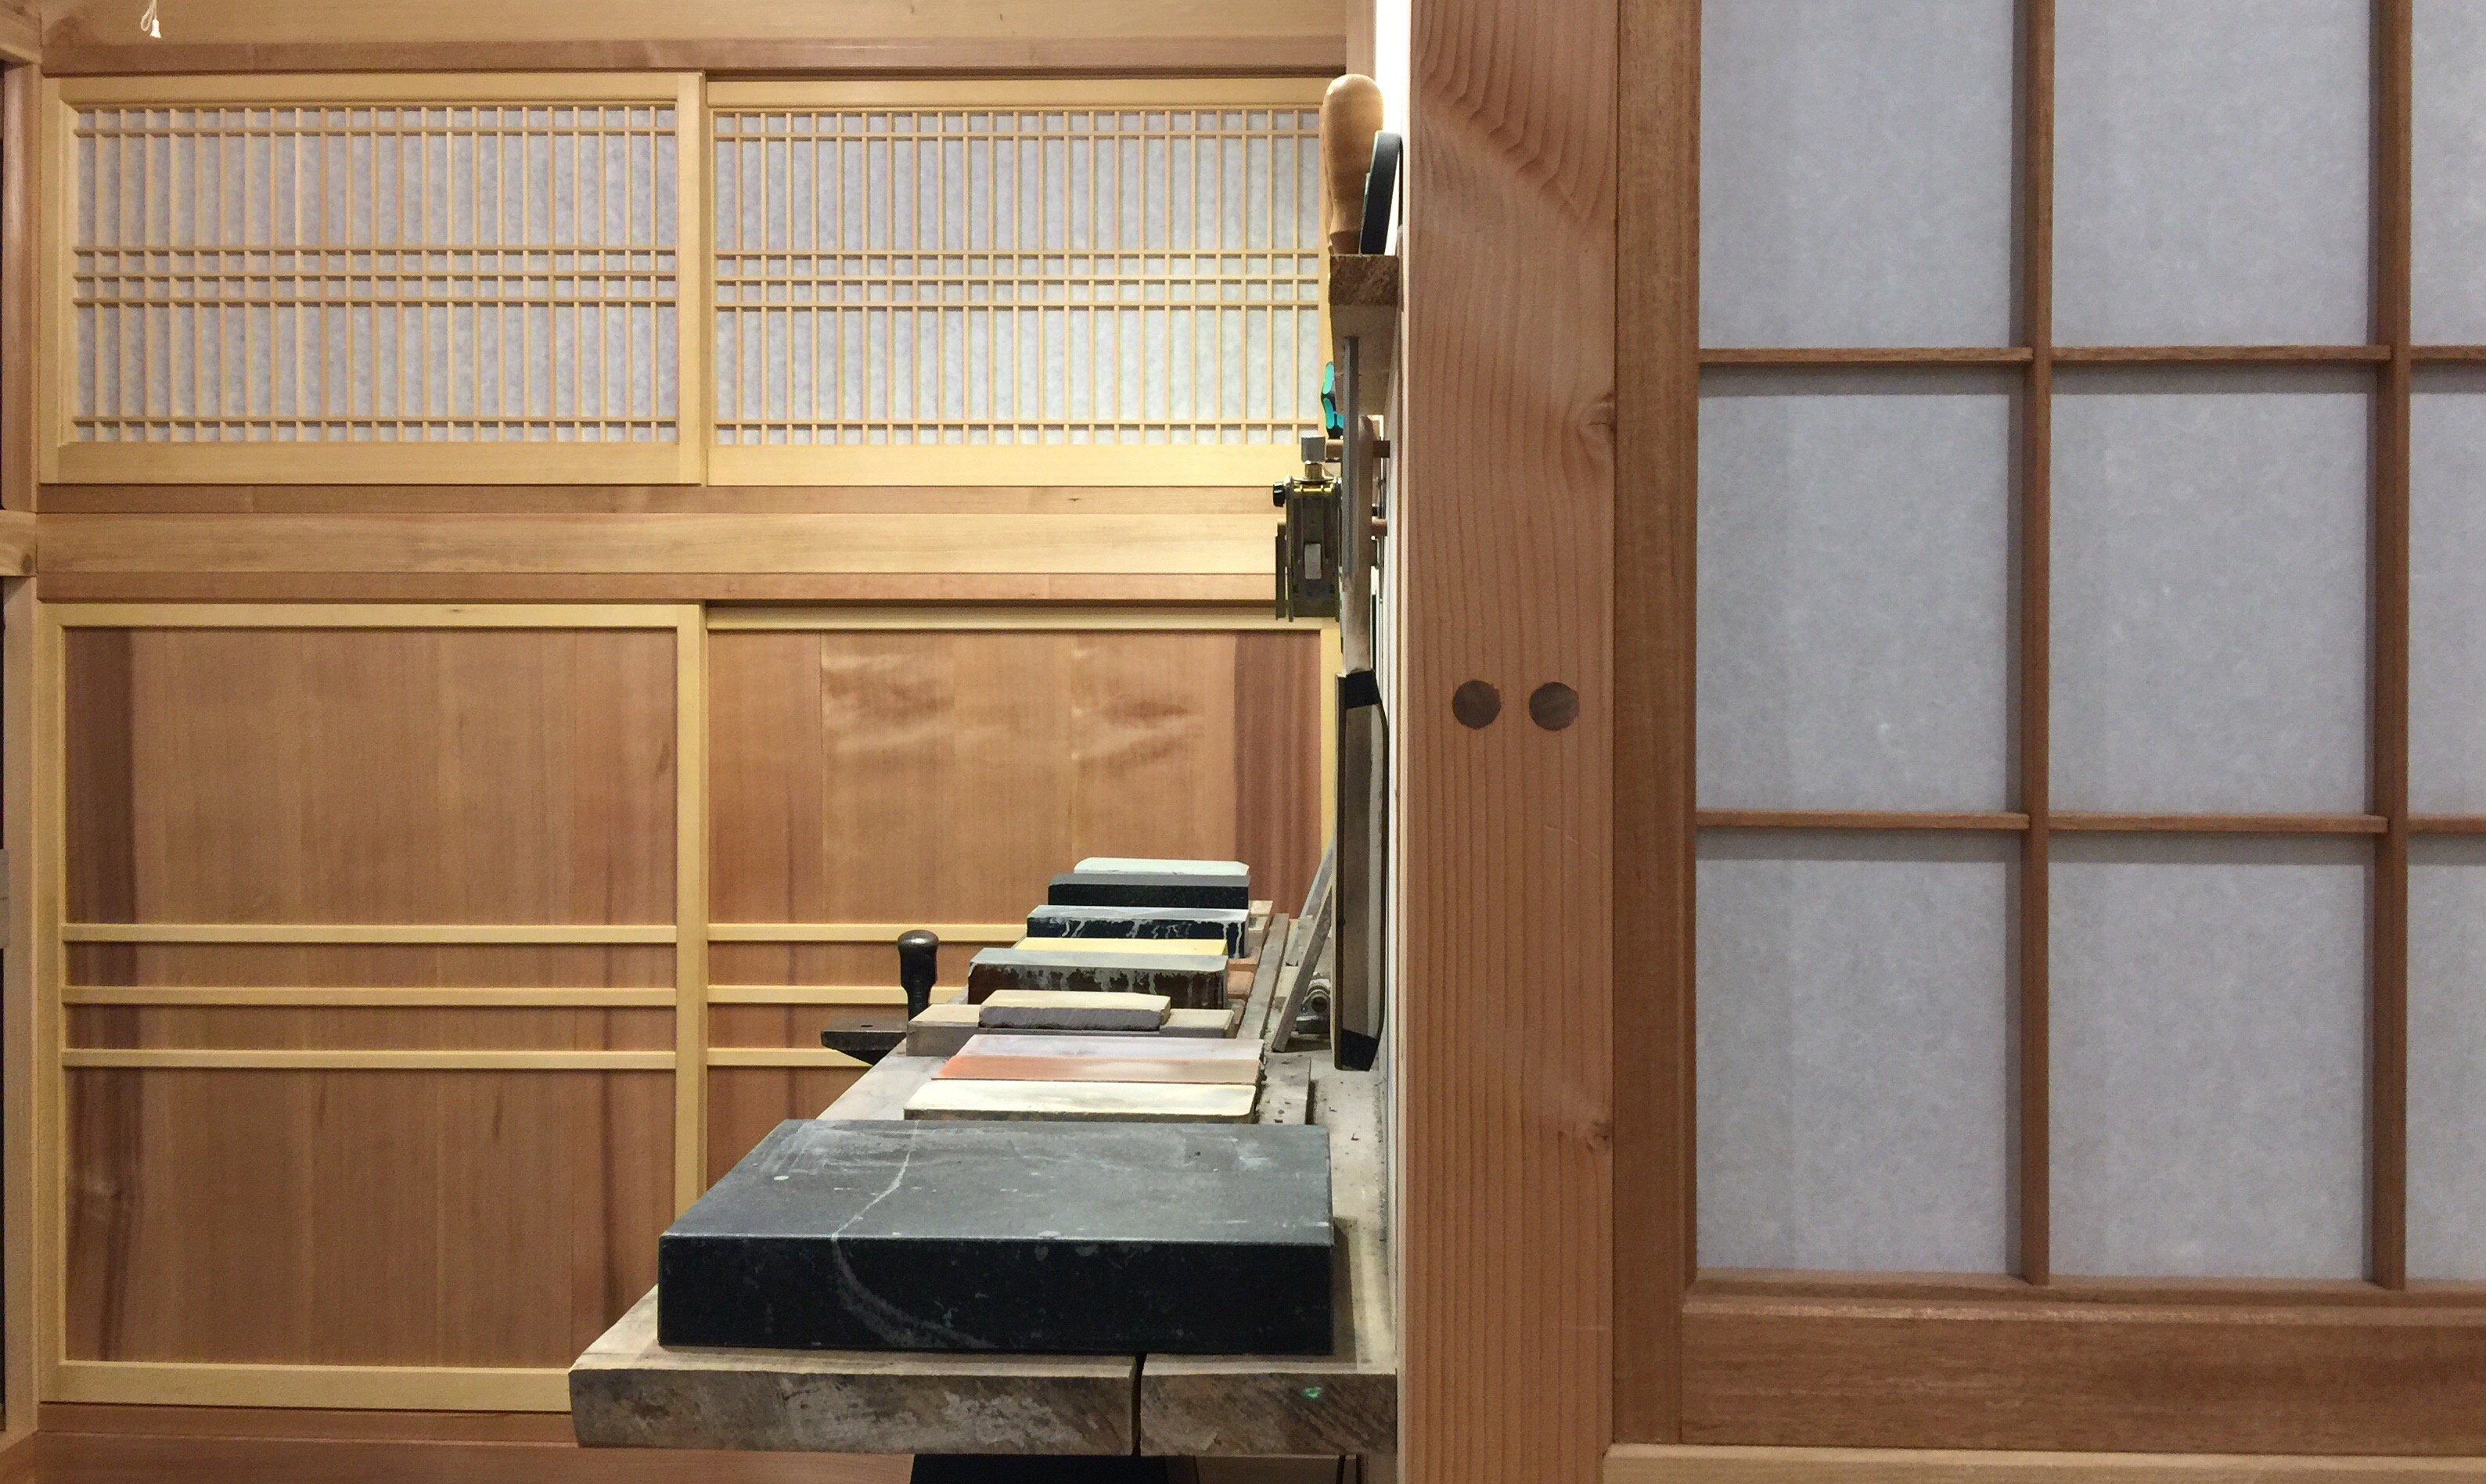 Japanese Natural Stones: A User's Perspective